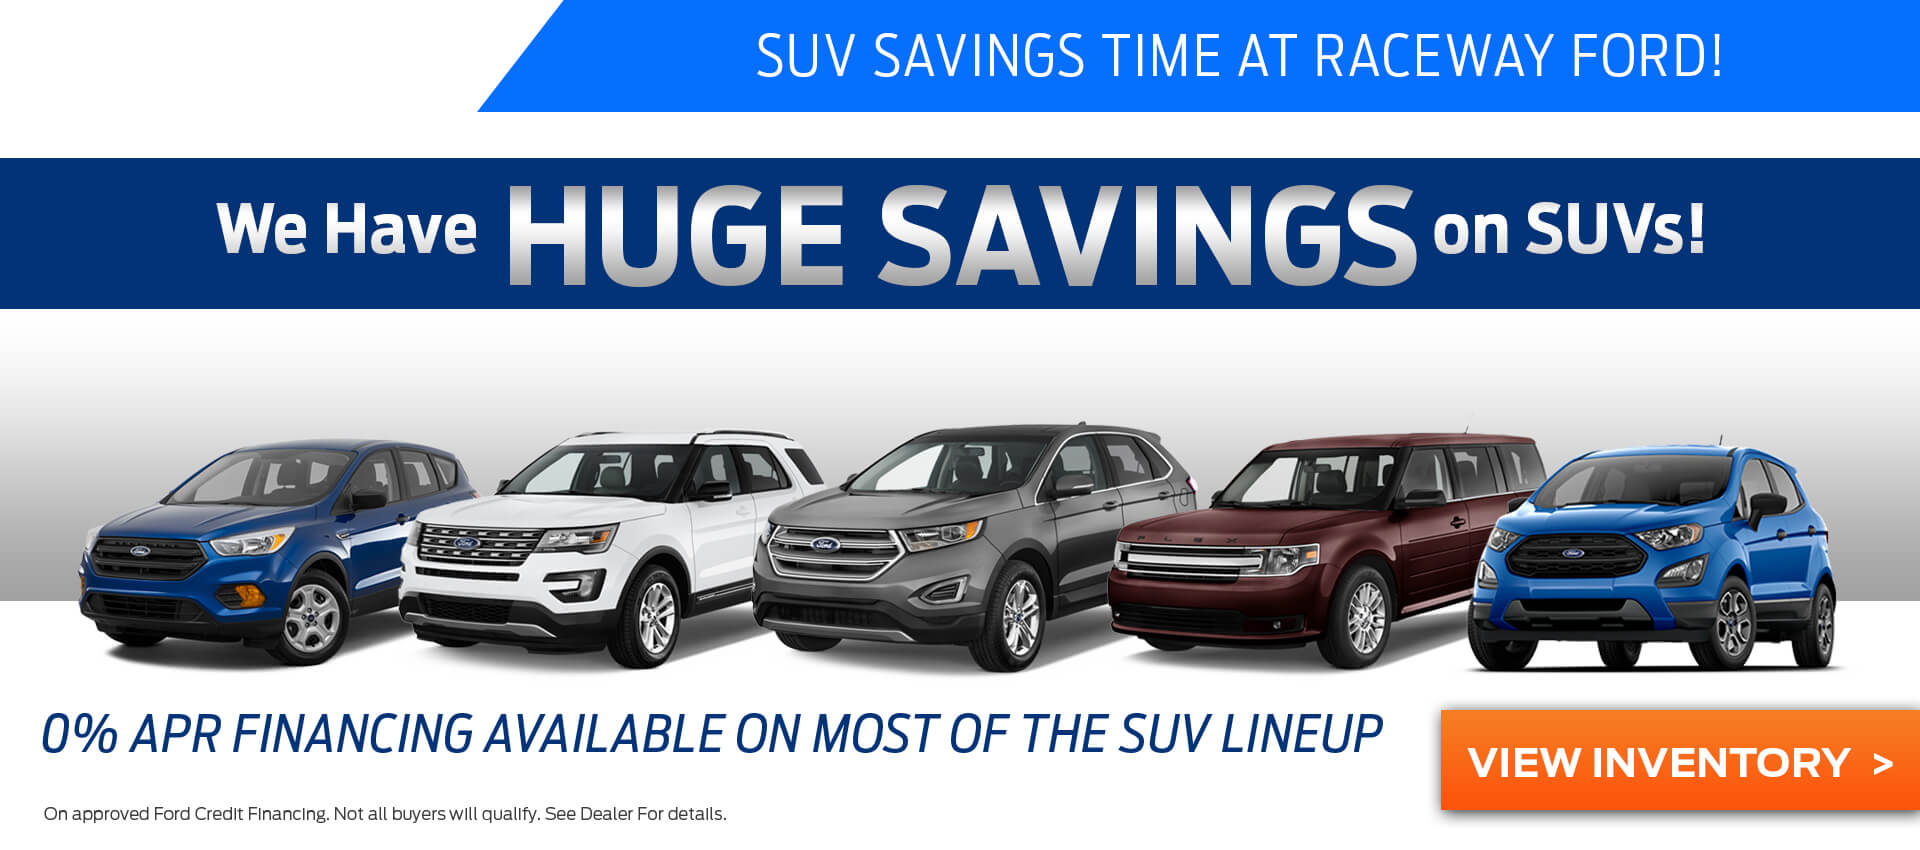 Raceway Ford Of Riverside Driving The Inland Empire For Years - Ford dealers in ct